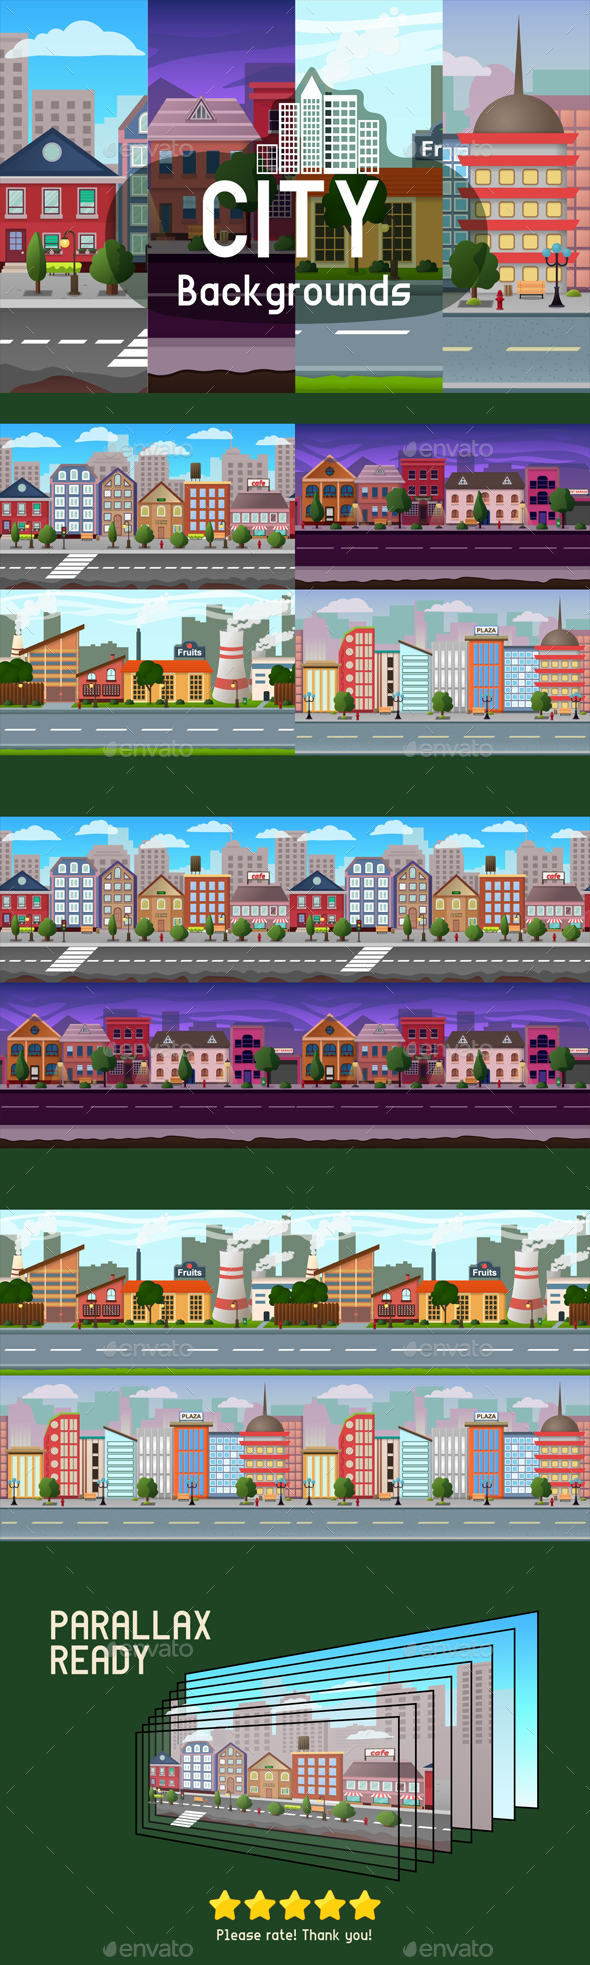 Scrolling City Backgrounds - Backgrounds Game Assets